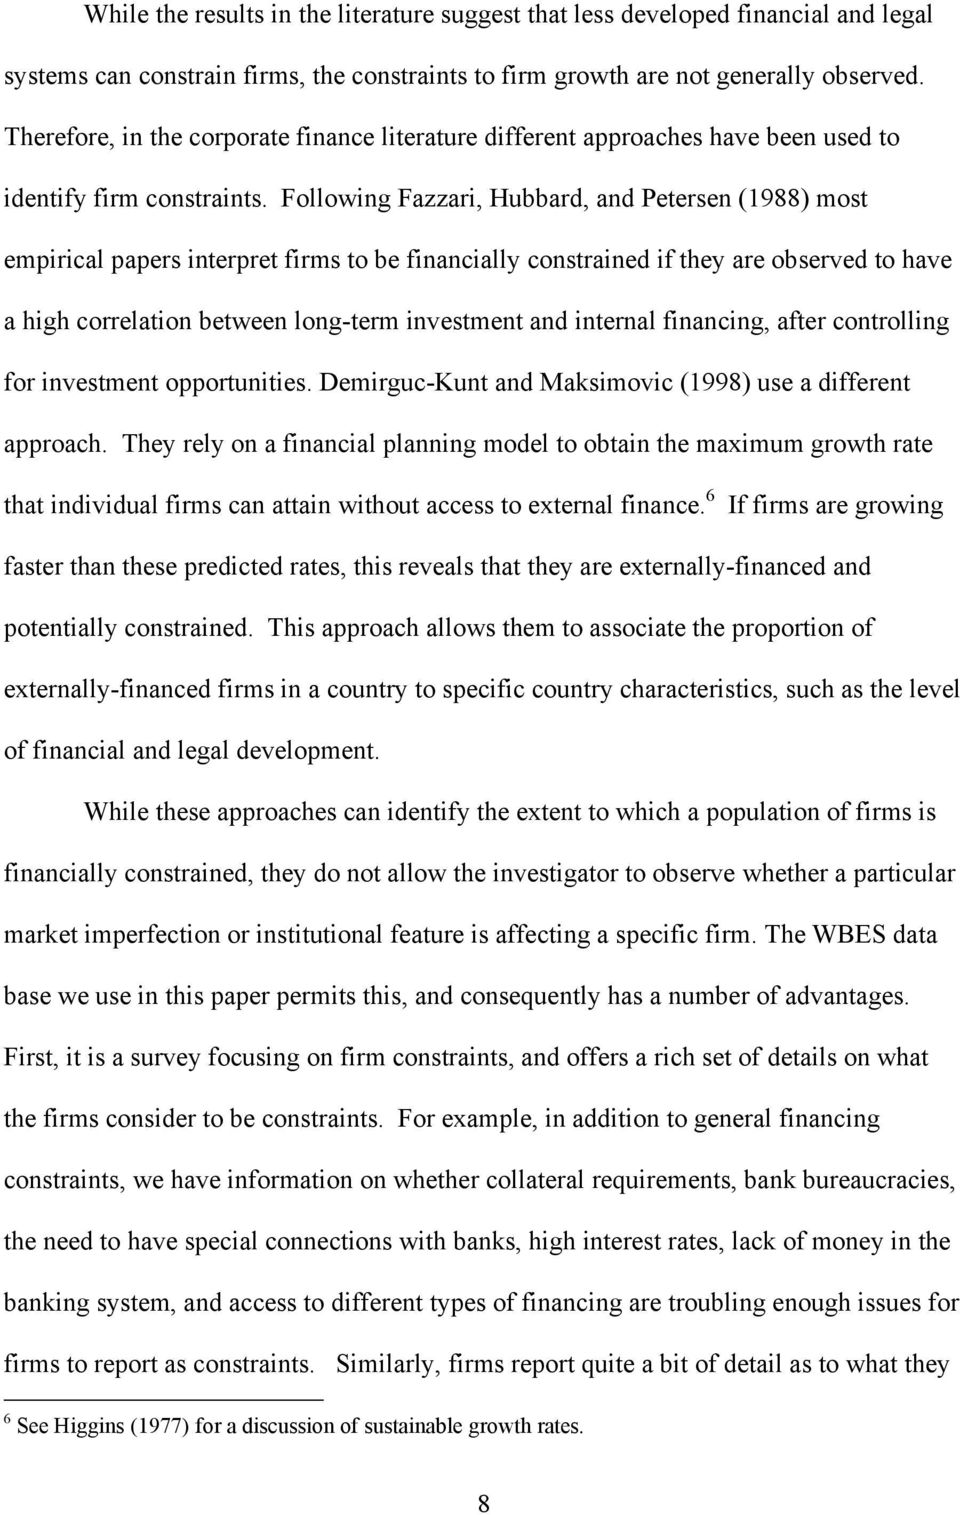 Following Fazzari, Hubbard, and Petersen (1988) most empirical papers interpret firms to be financially constrained if they are observed to have a high correlation between long-term investment and